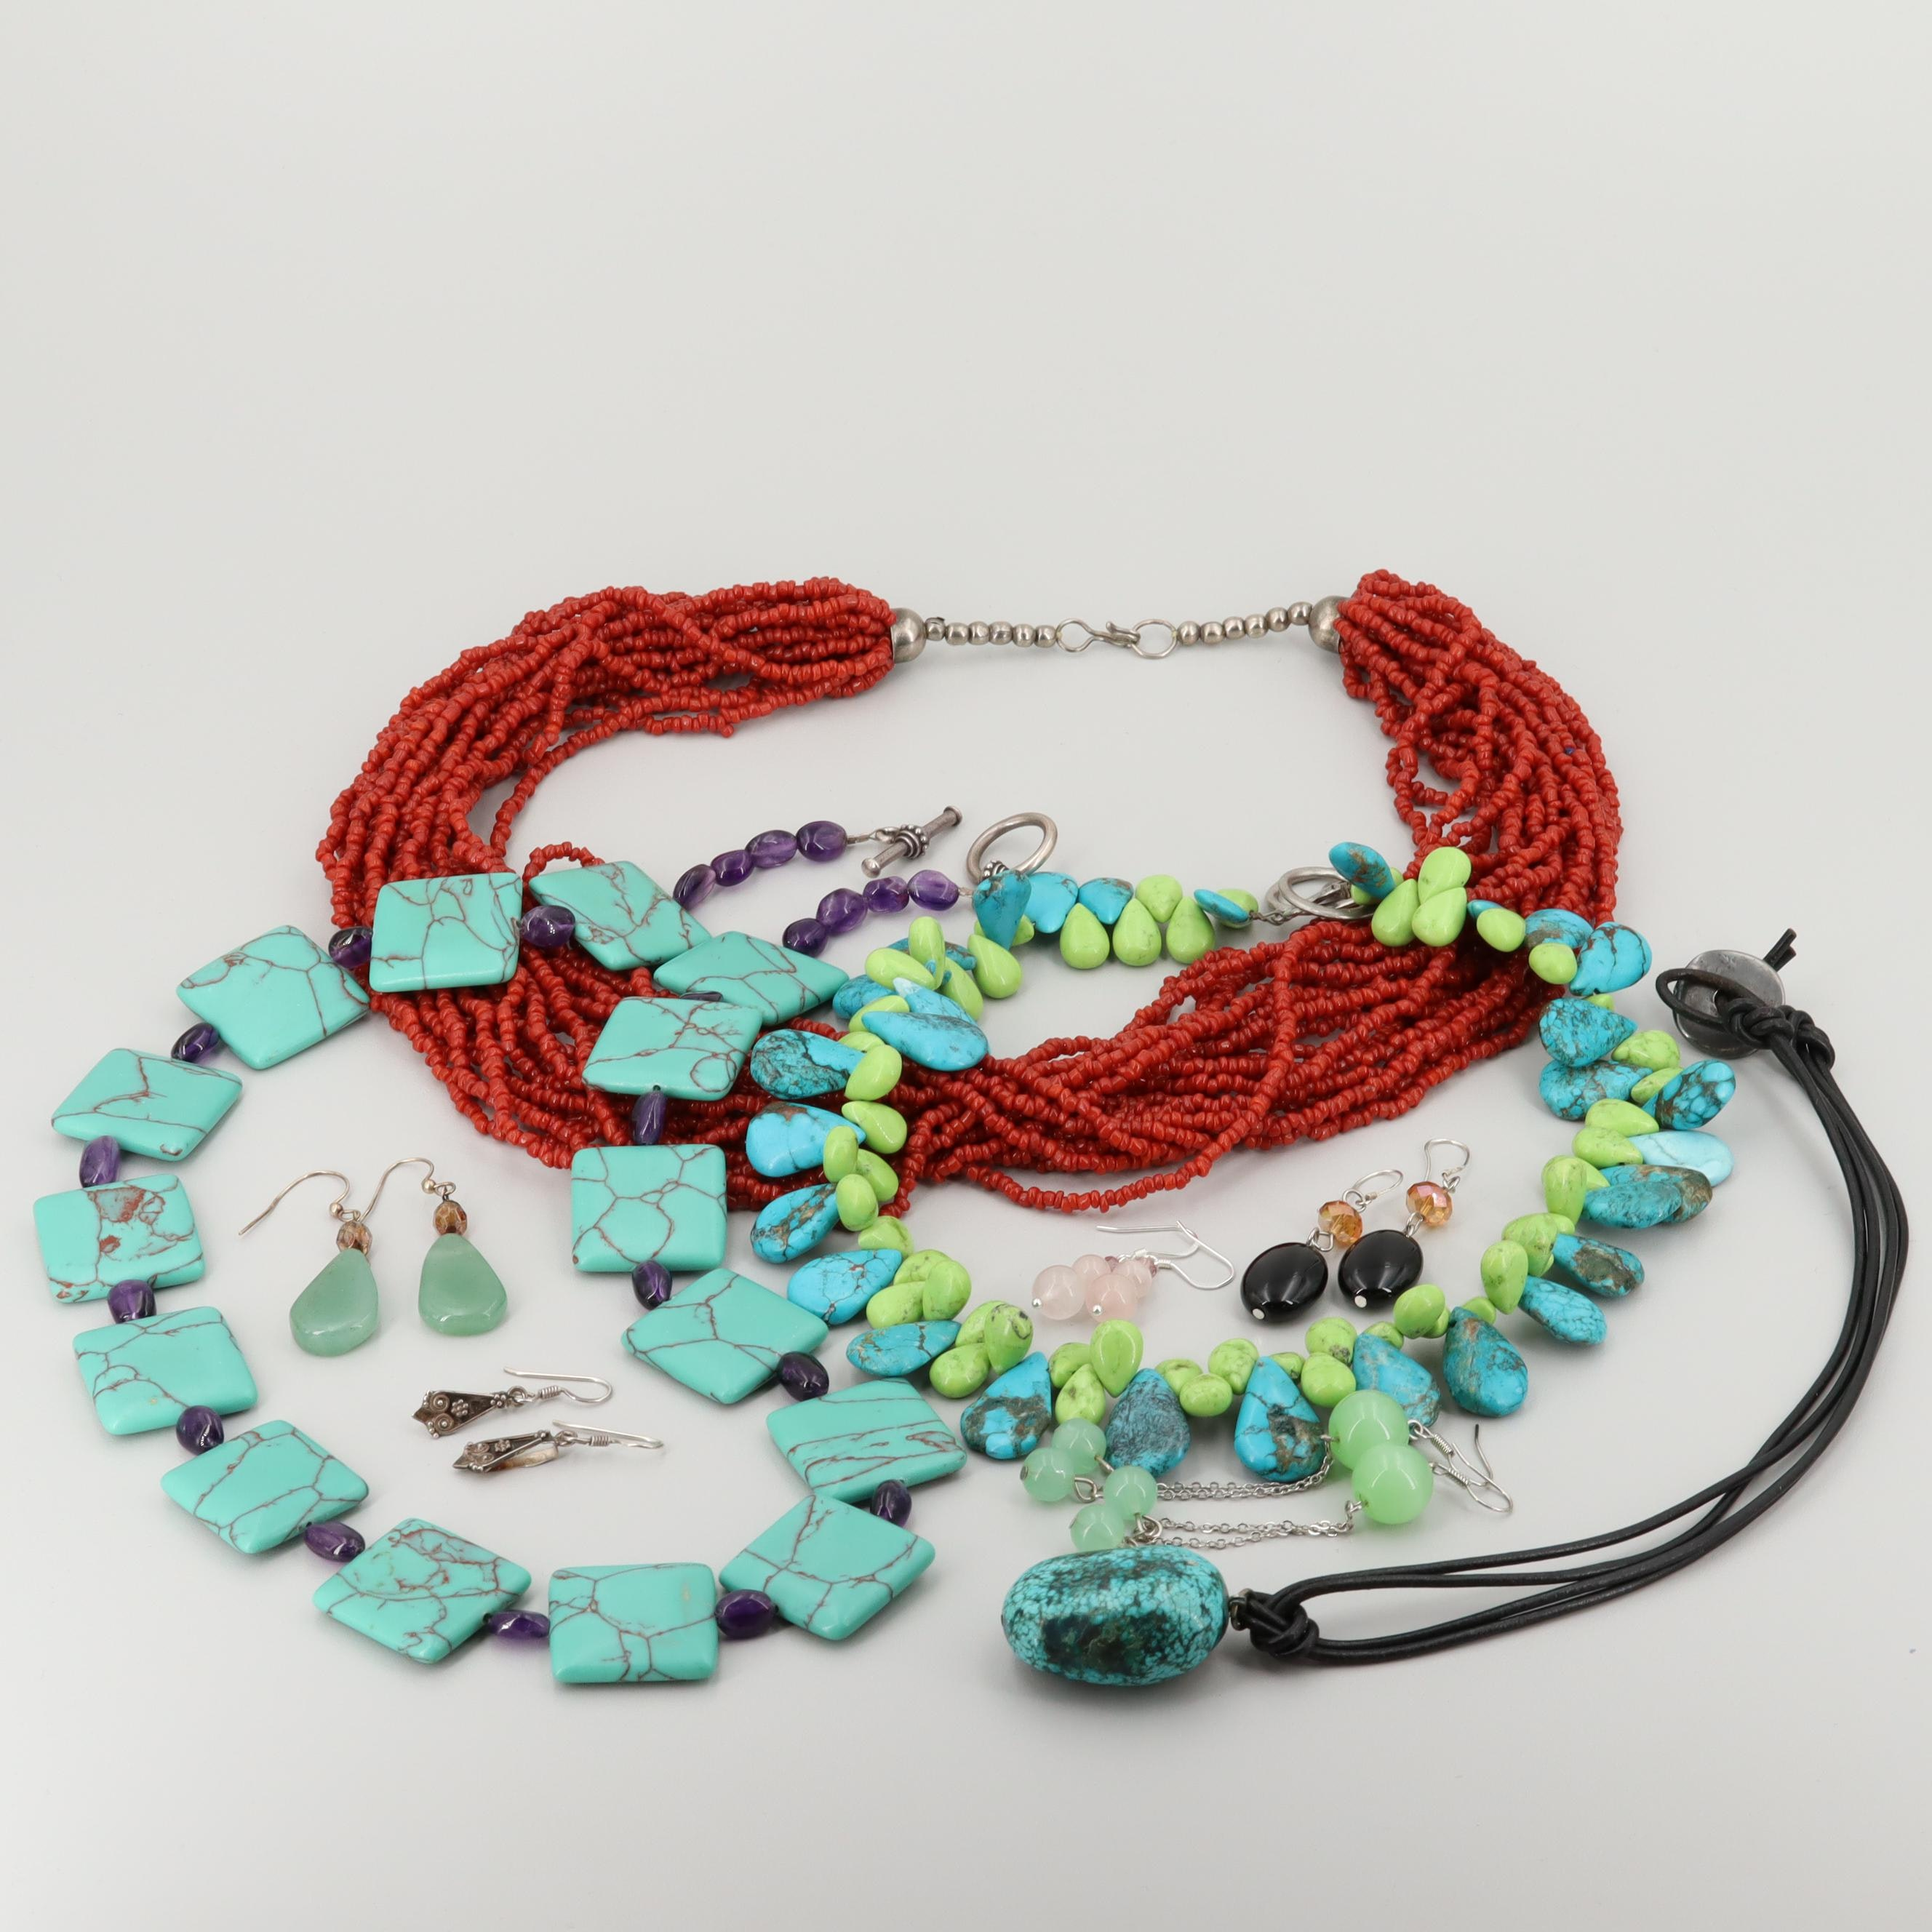 Sterling Silver and Silver Tone Necklaces and Earrings Including Chrysocolla